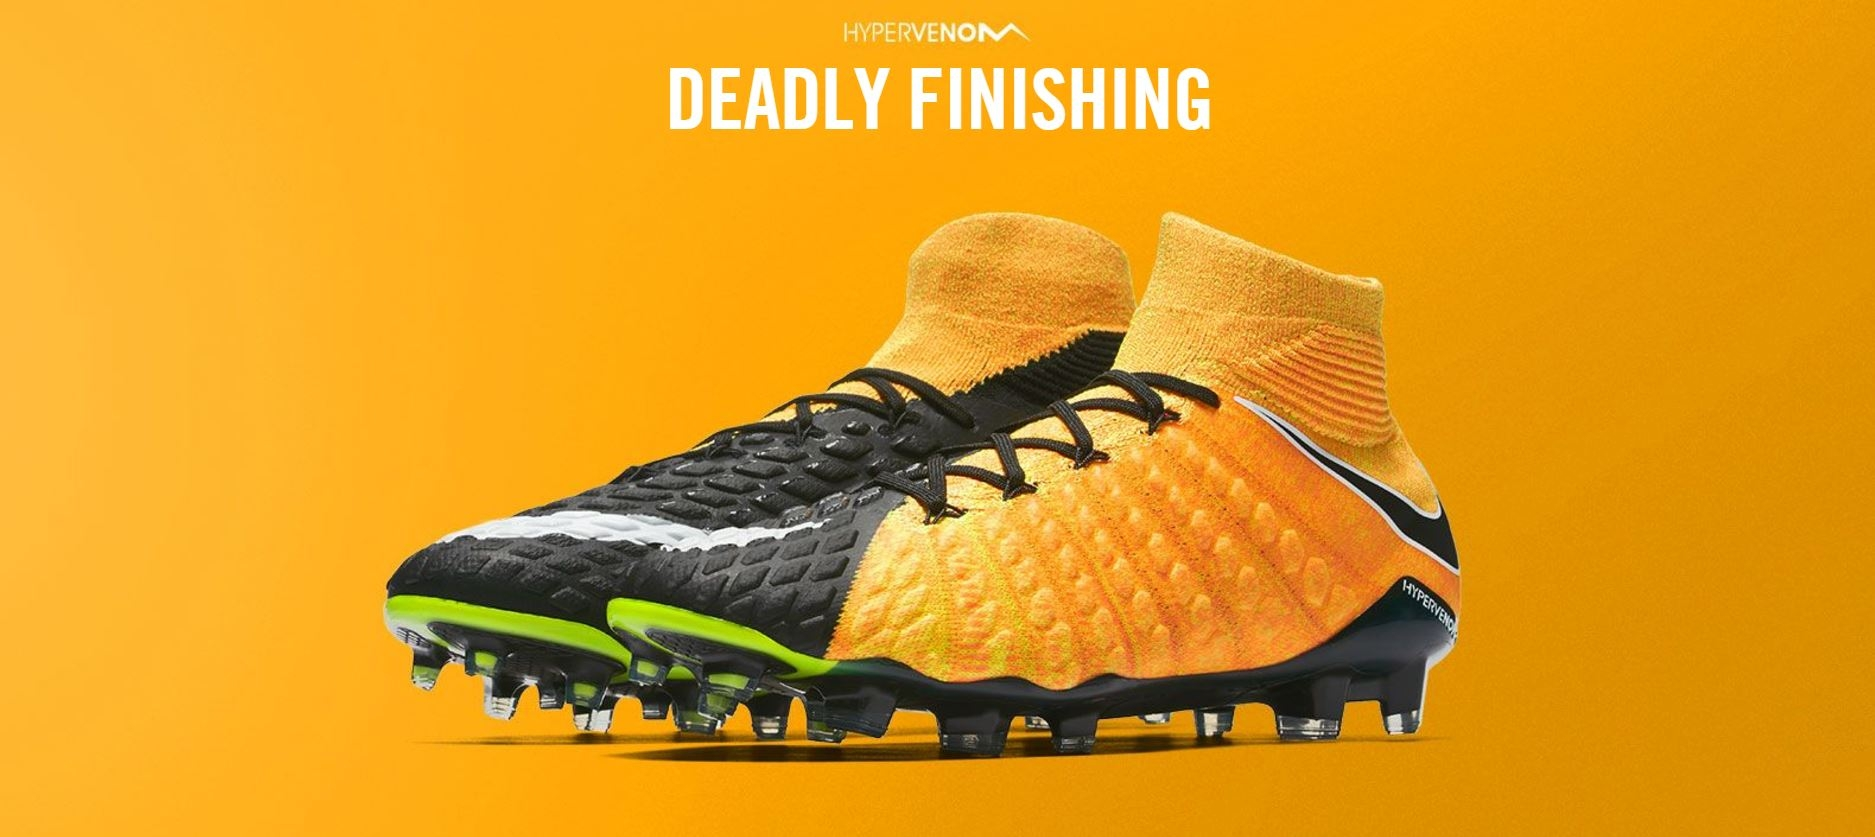 c89a6983b Hypervenom - Nike Bootroom - Product Family